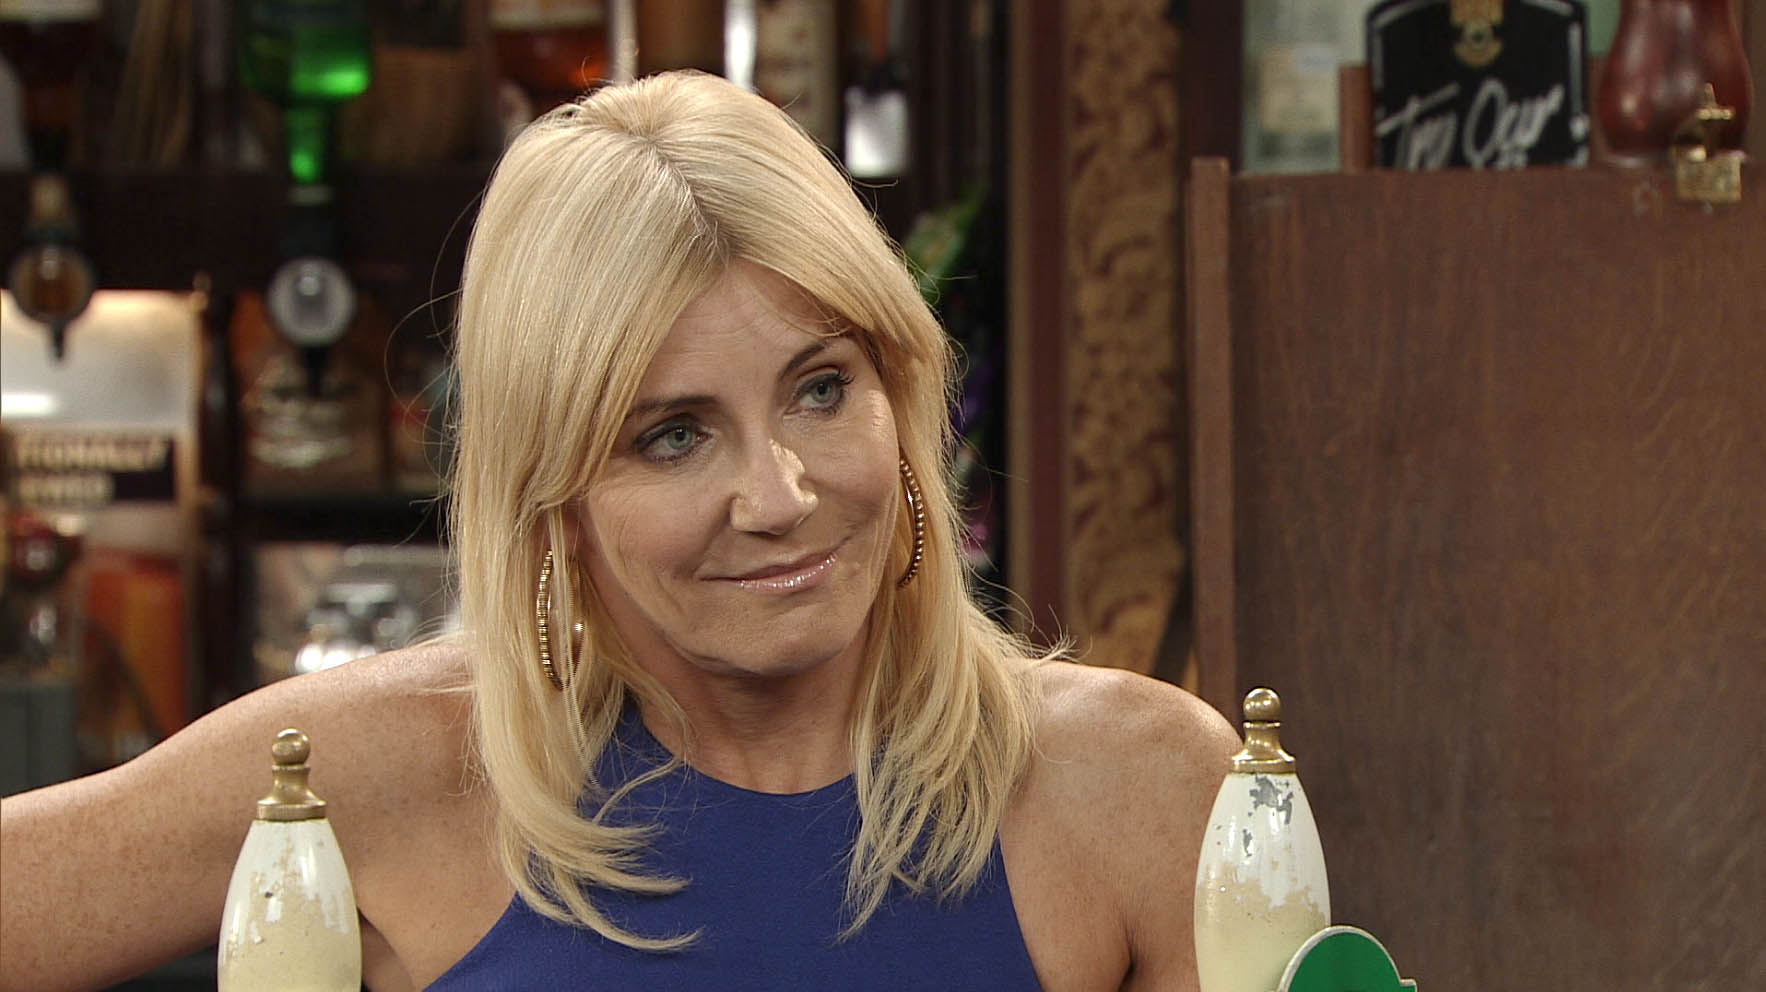 Mandatory Credit: Photo by ITV/REX/Shutterstock (3529655az) Coronation Street - Ep 7992 Friday 9 November 2012 at 7.30pm The charity 5 a side becomes a grudge match when Carole [DEBBIE ARNOLD] comes in to gloat to Stella Price [MICHELLE COLLINS]. Coronation Street 2012